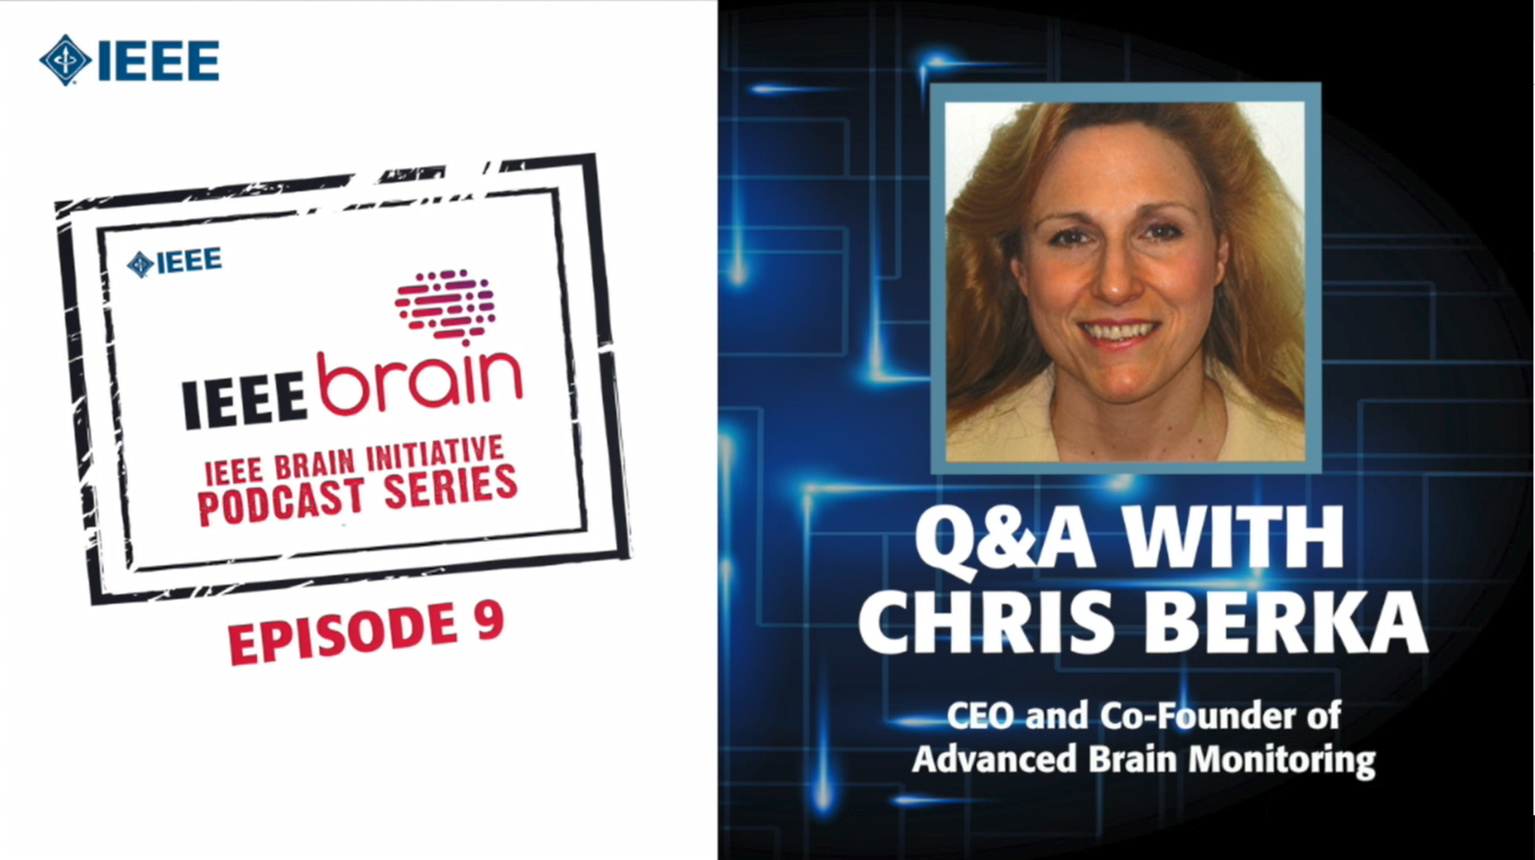 Q&A with Chris Berka: IEEE Brain Podcast, Episode 9